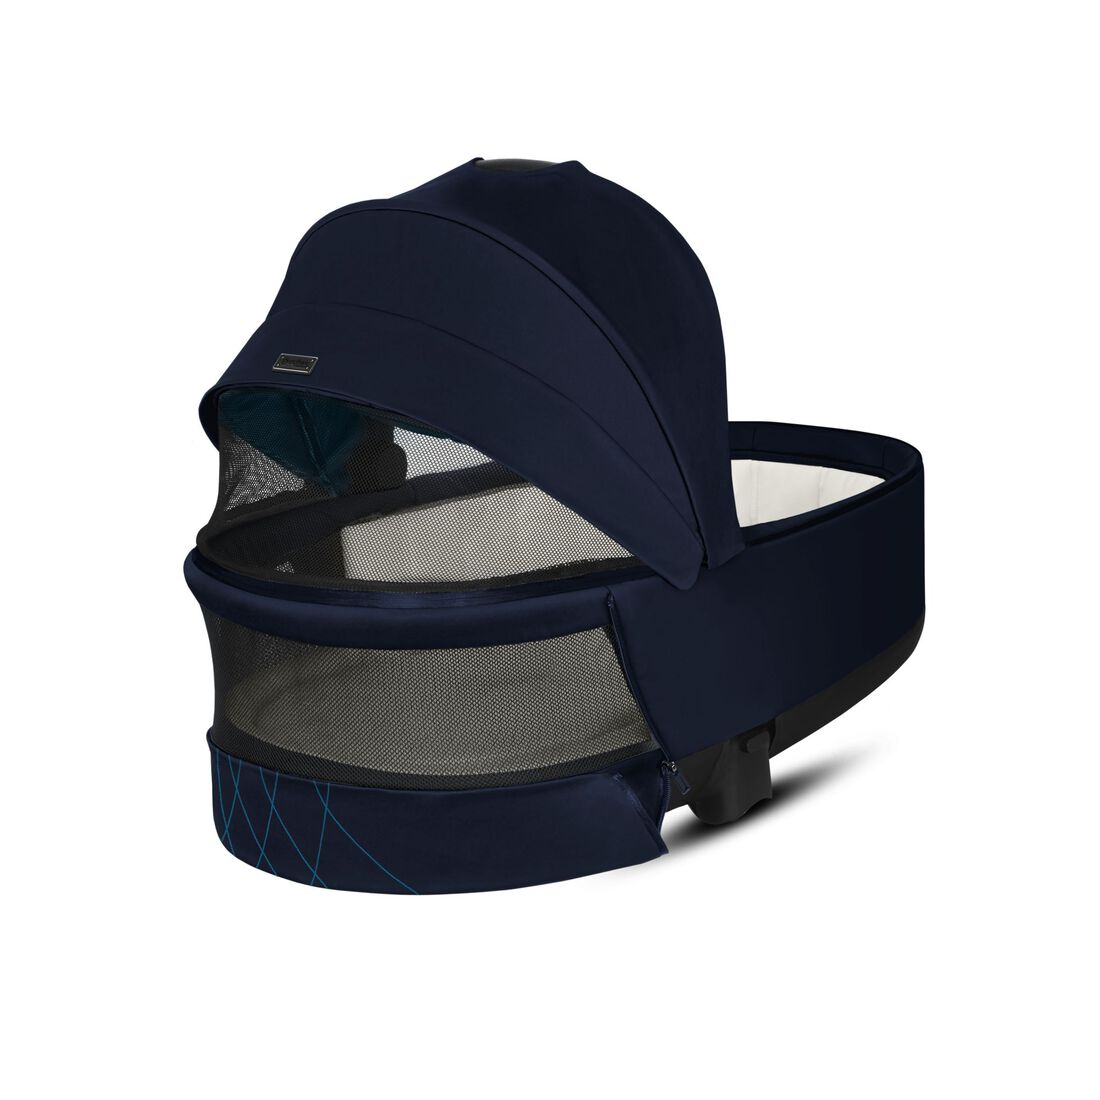 CYBEX Priam Lux Carry Cot - Nautical Blue in Nautical Blue large image number 4